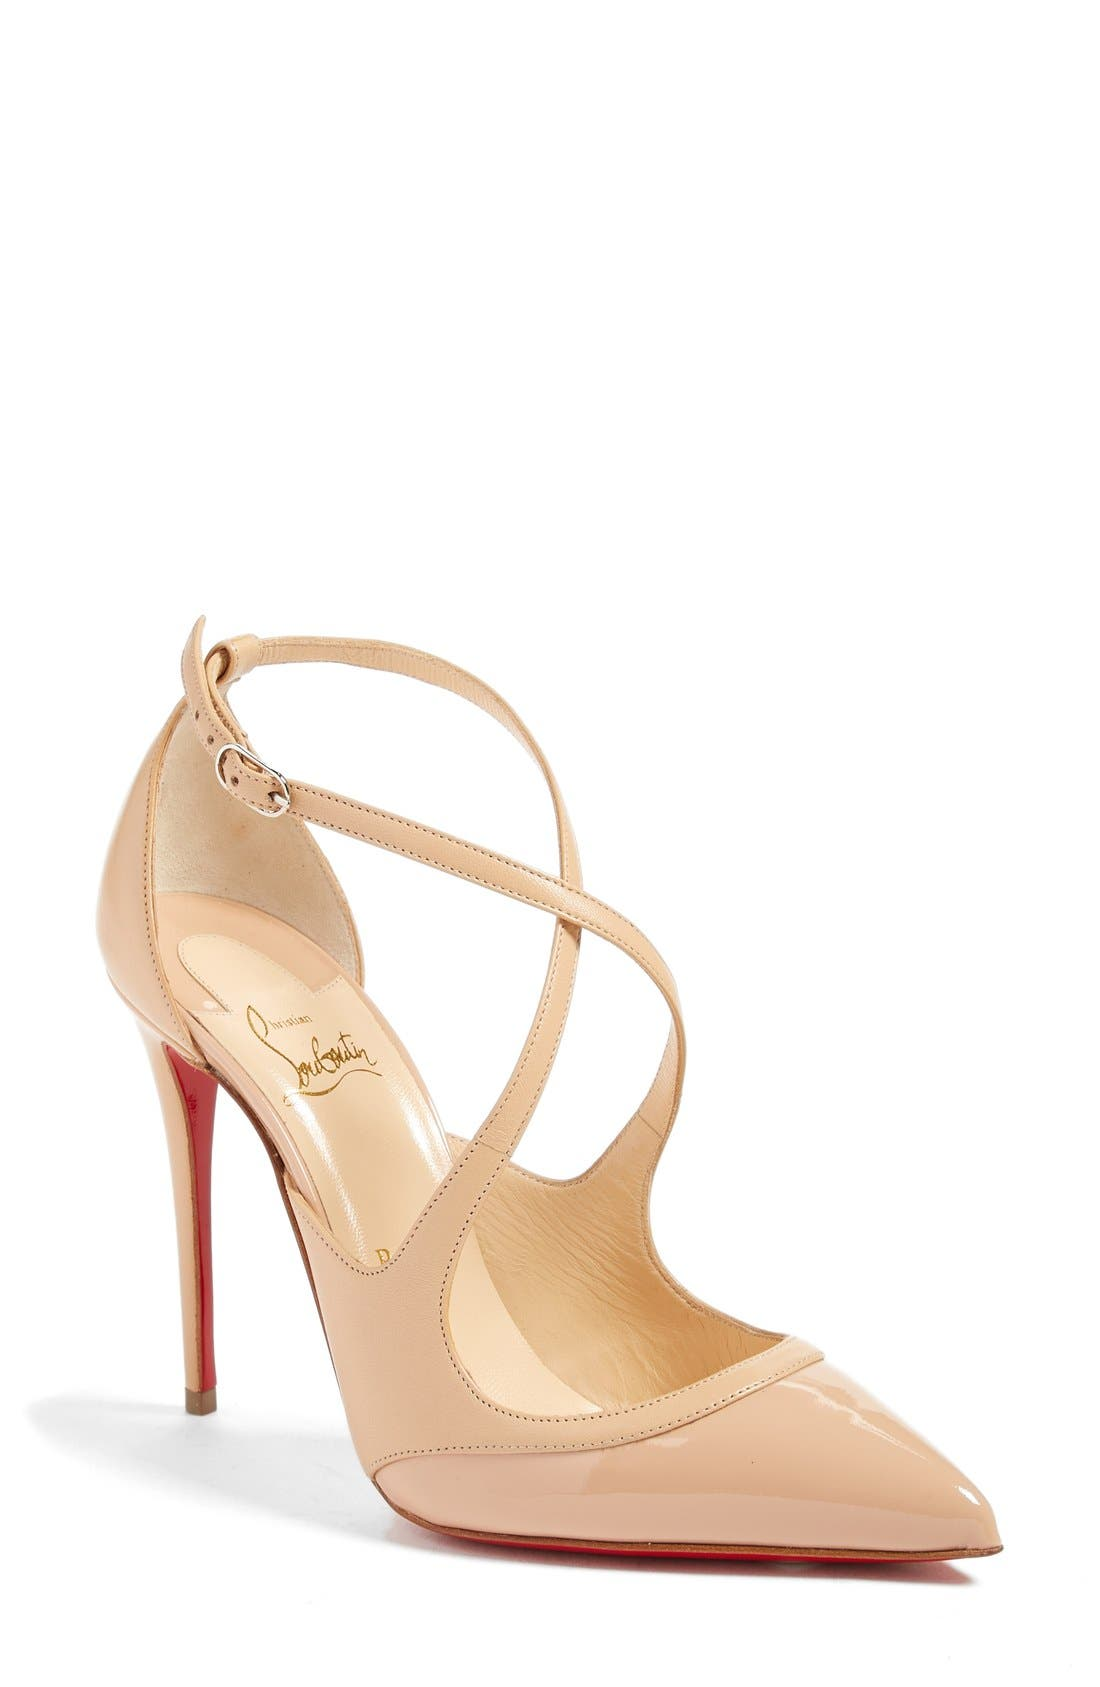 CHRISTIAN LOUBOUTIN Crissos Pointy Toe Pump